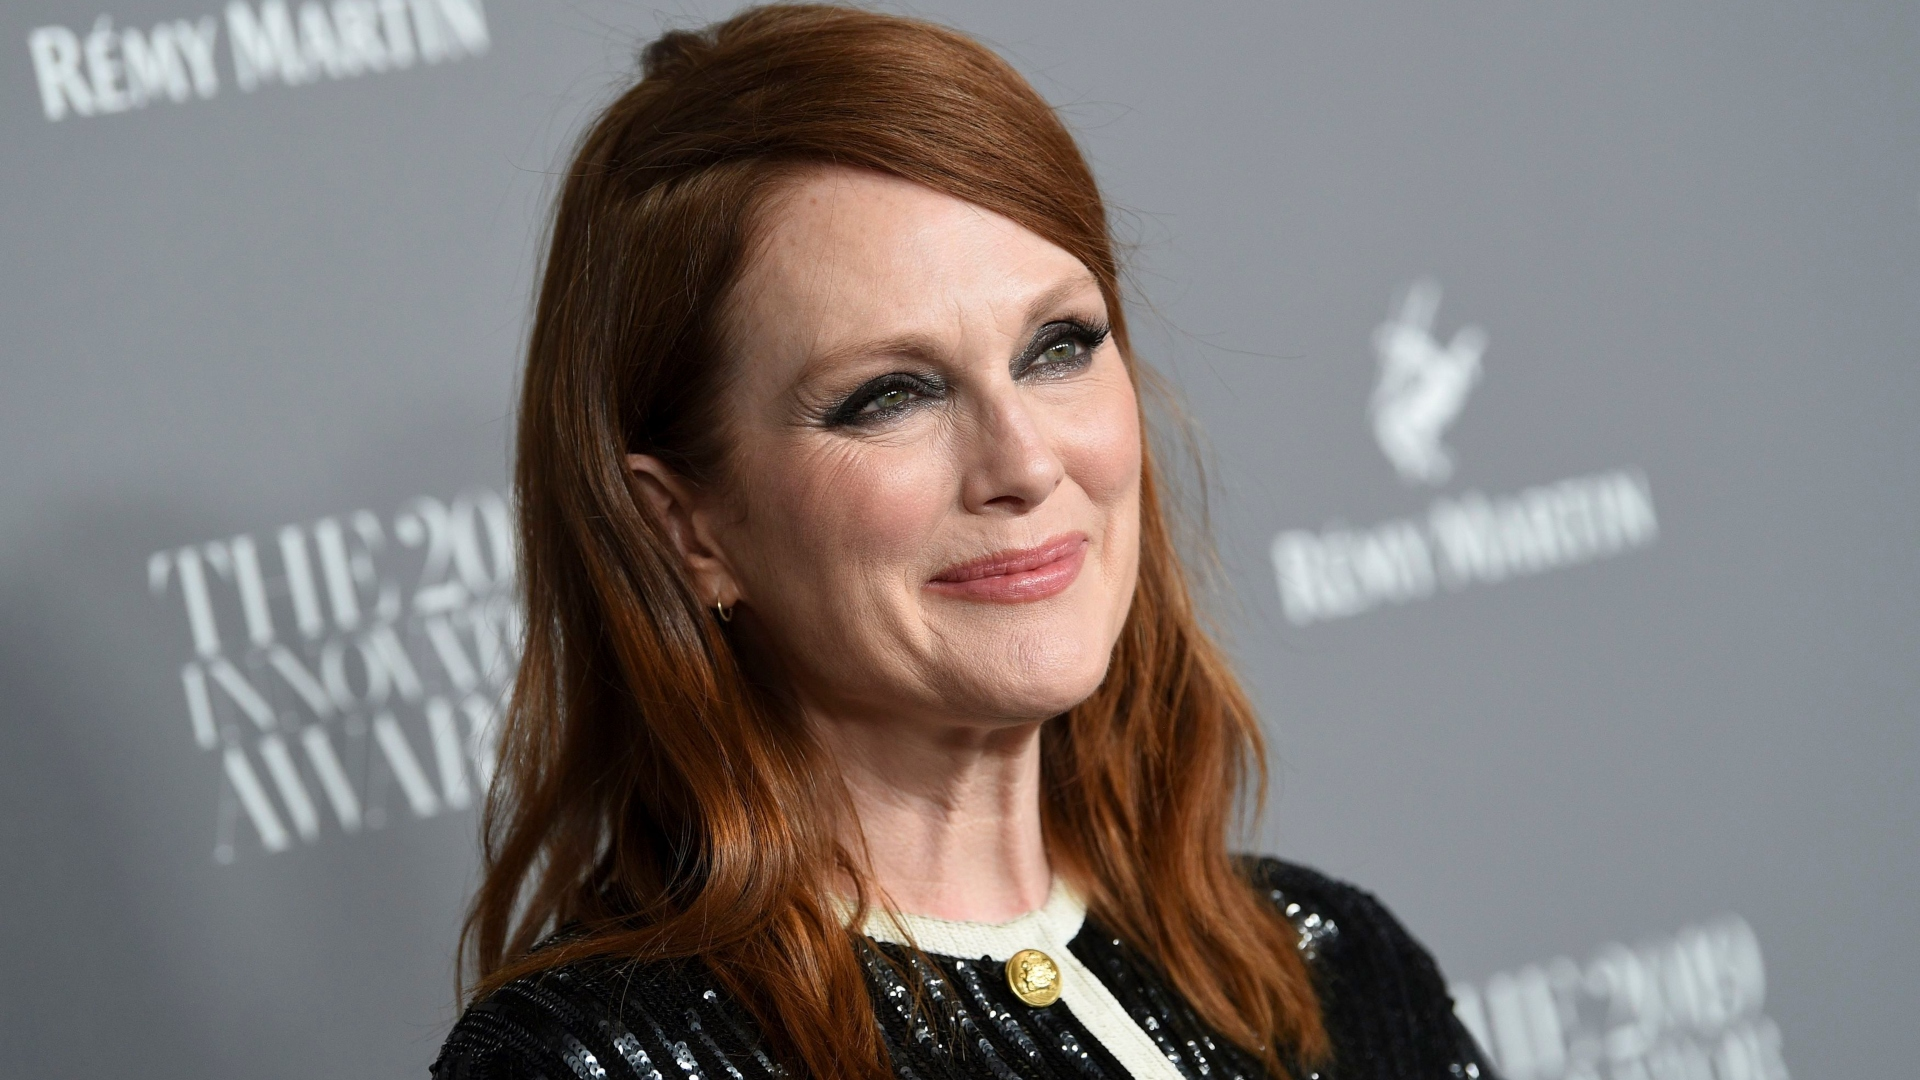 Julianne Moore's Photo of Her Lookalike Daughter Has Us Seeing Double –  SheKnows